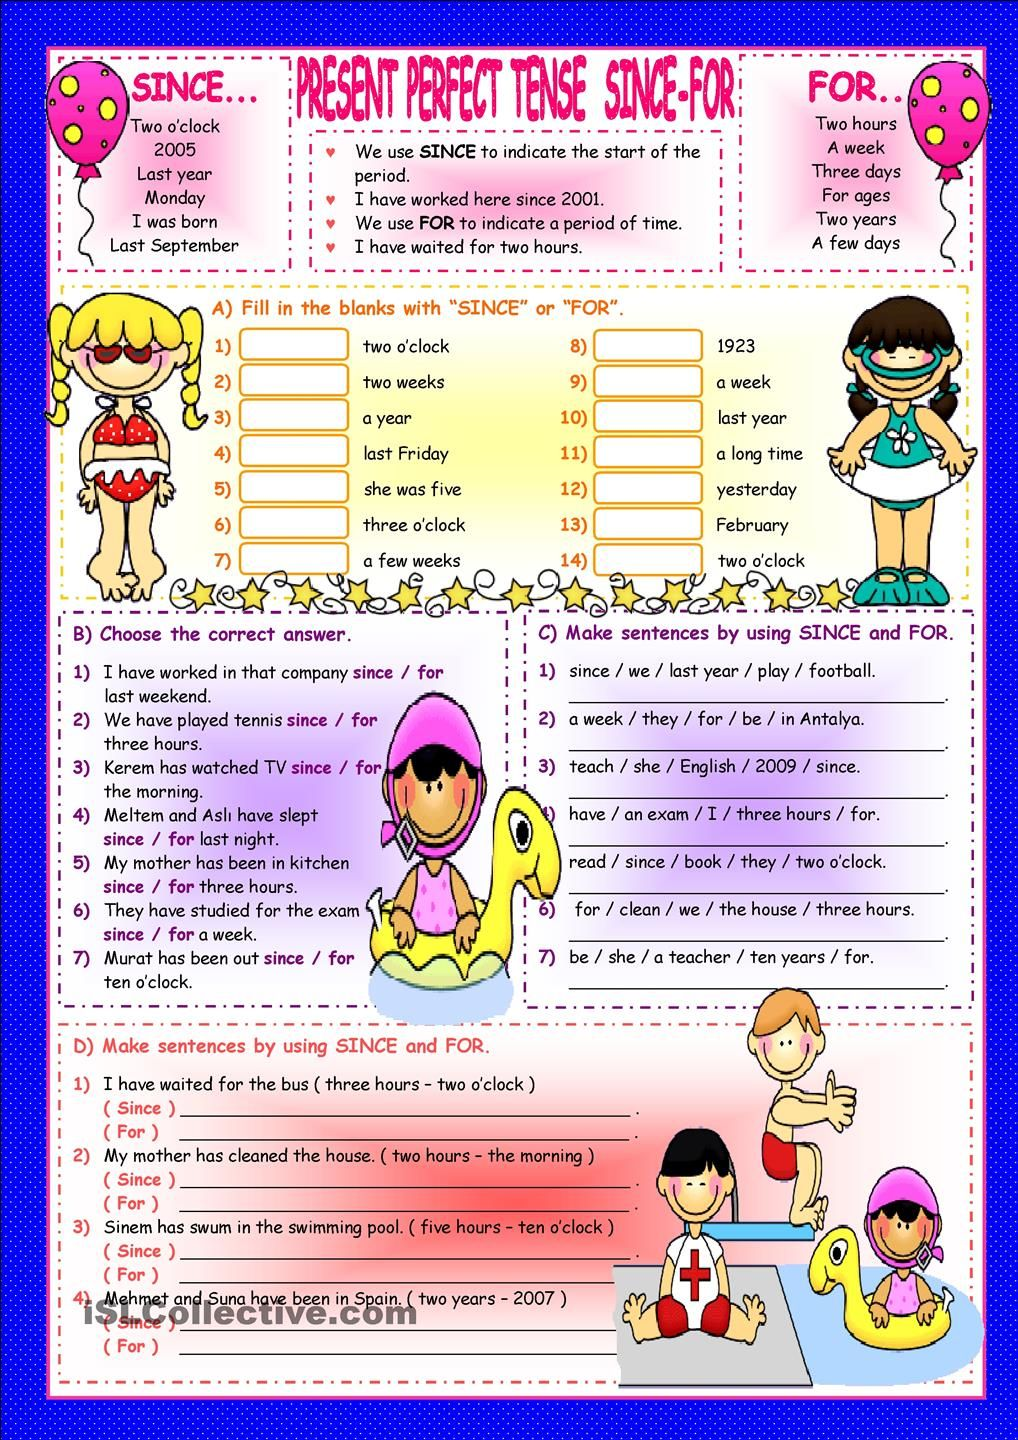 Present Perfect Tense-SINCE-FOR | Present perfect | Pinterest ...